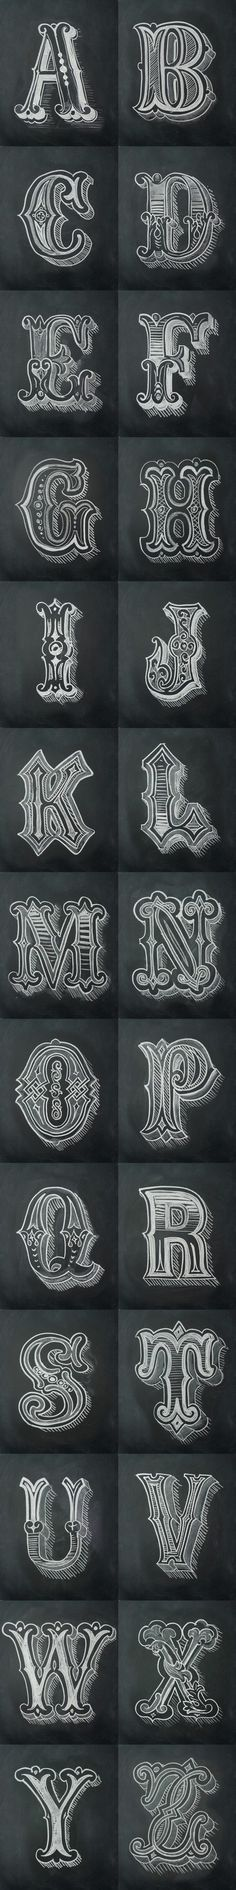 Chalk Alphabet by Antonio Rodrigues Jr. - a grouped images picture - Pin Them. - # Chalk Alphabet by Antonio Rodrigues Jr. - a grouped images picture - Pin Them. Calligraphy Letters, Typography Letters, Typography Design, Typography Poster, Learn Calligraphy, Fancy Lettering Alphabet, Typography Alphabet, Inspiration Typographie, Typography Served